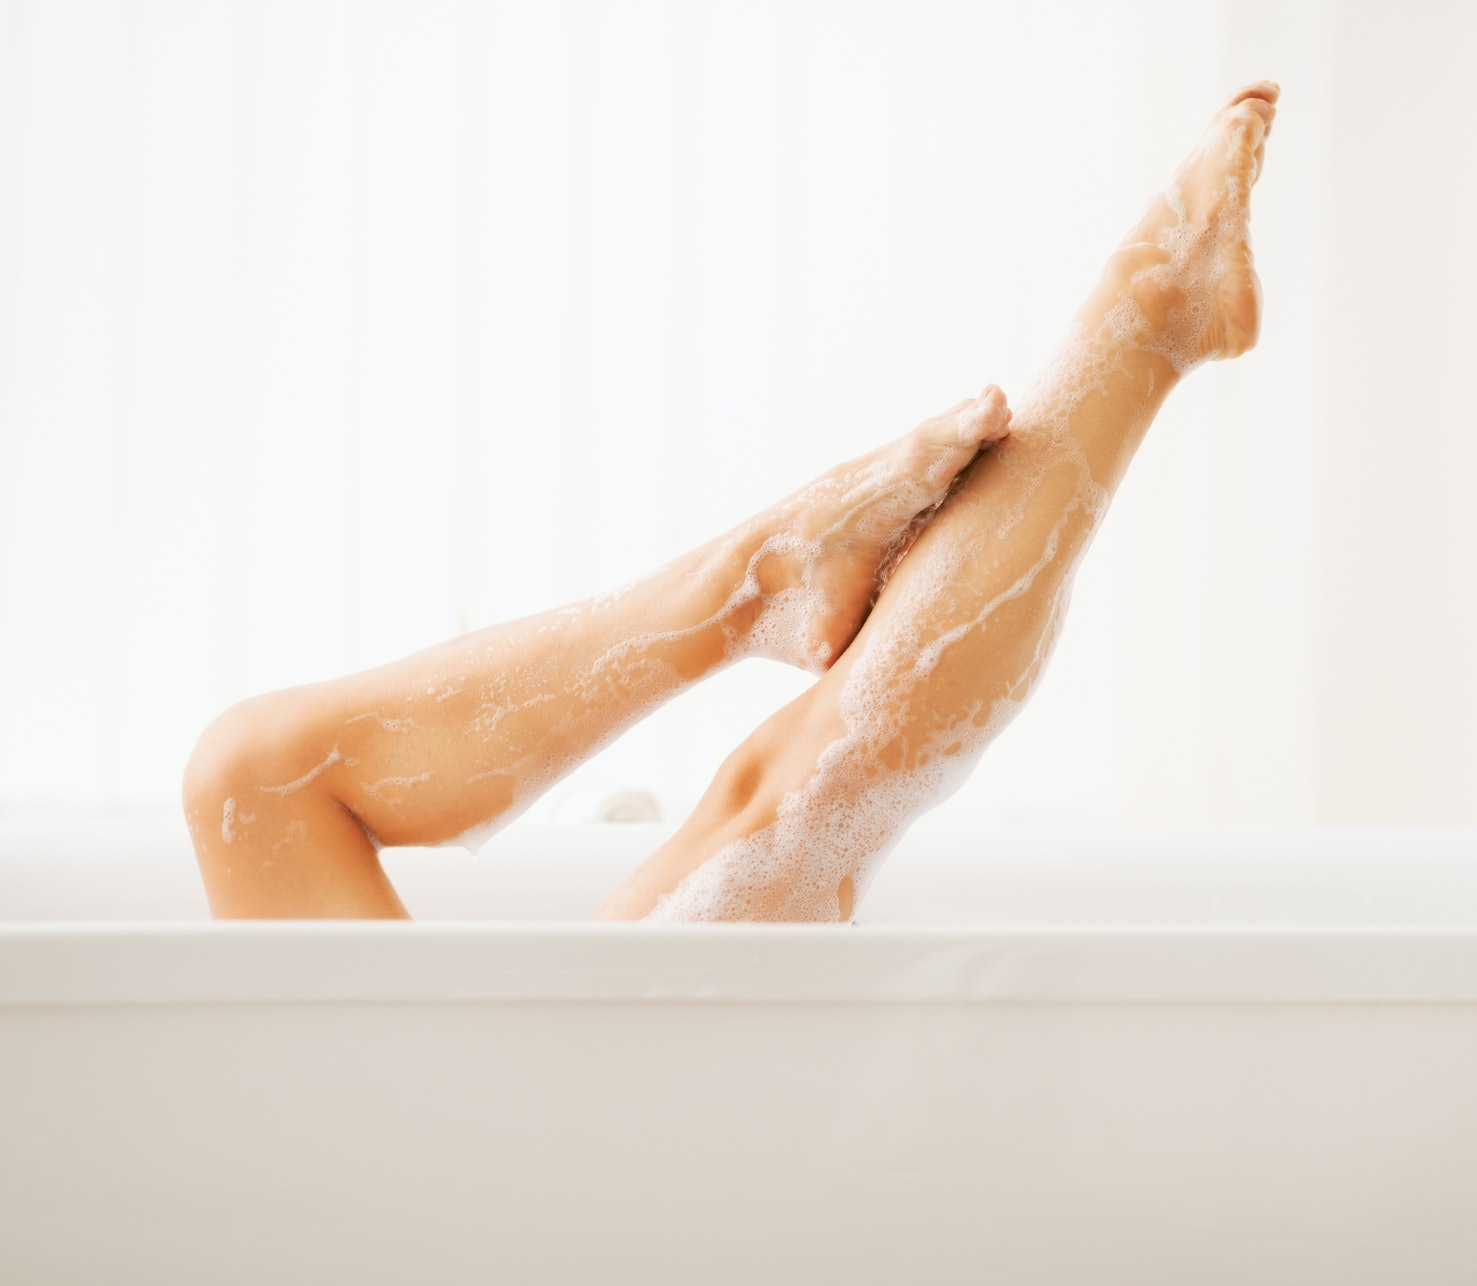 How To Remove An Ingrown Hair Quickly  Easily  And Without Any Lasers Whatsoever